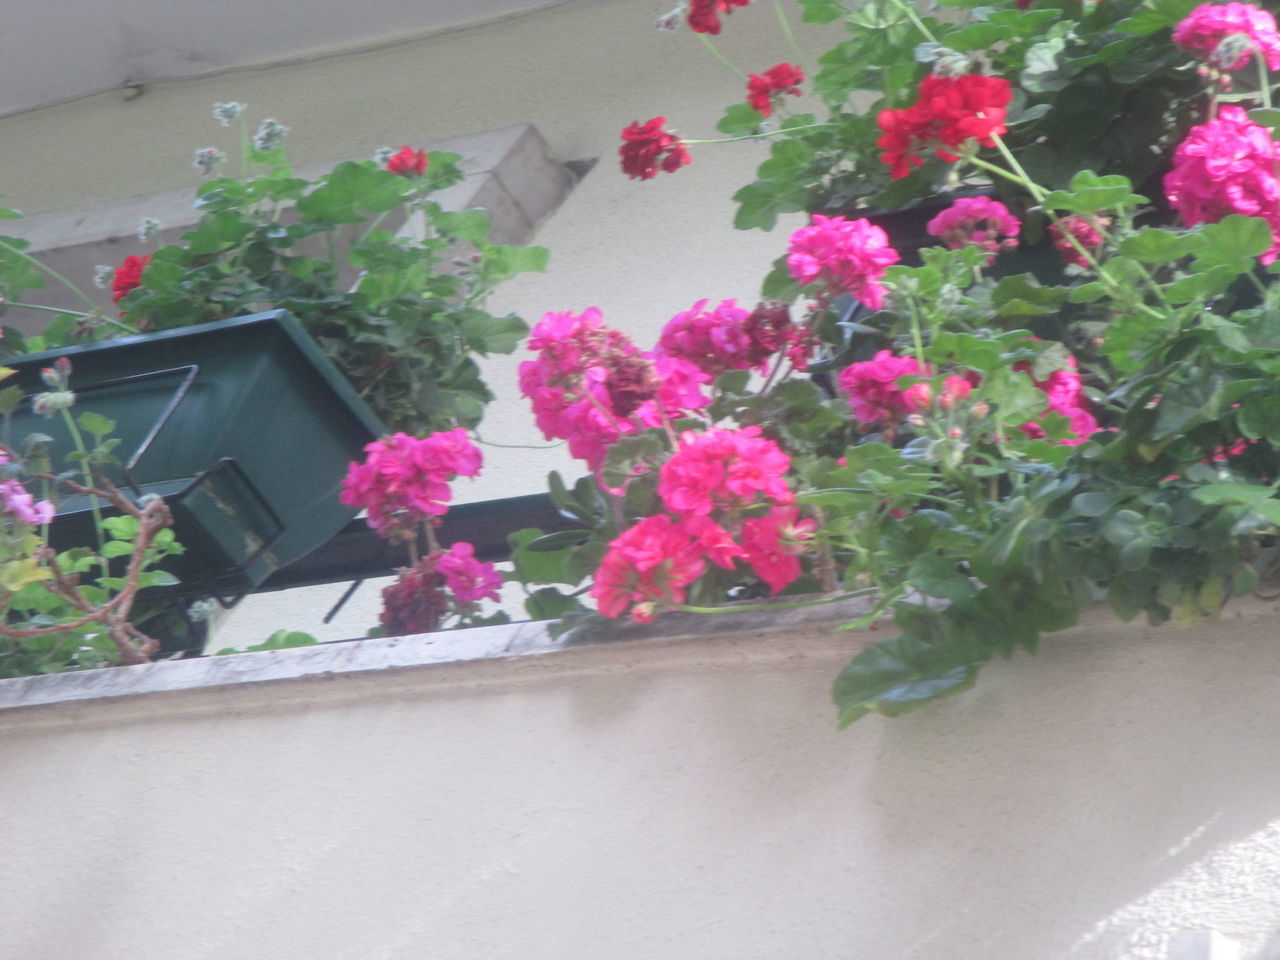 #beauty In Nature #flourishing Plant #flowers On The Balcony #Pink Flowers Balcony Balcony Views Beautiful Flowers Blooming Day Detail From A Balco Feminine  Flourishing Flower Flowers Hanging From The Balcony Fragance Growth Harmony Life Nature No People Plant Romantic Romantic Flowers Scent Spring